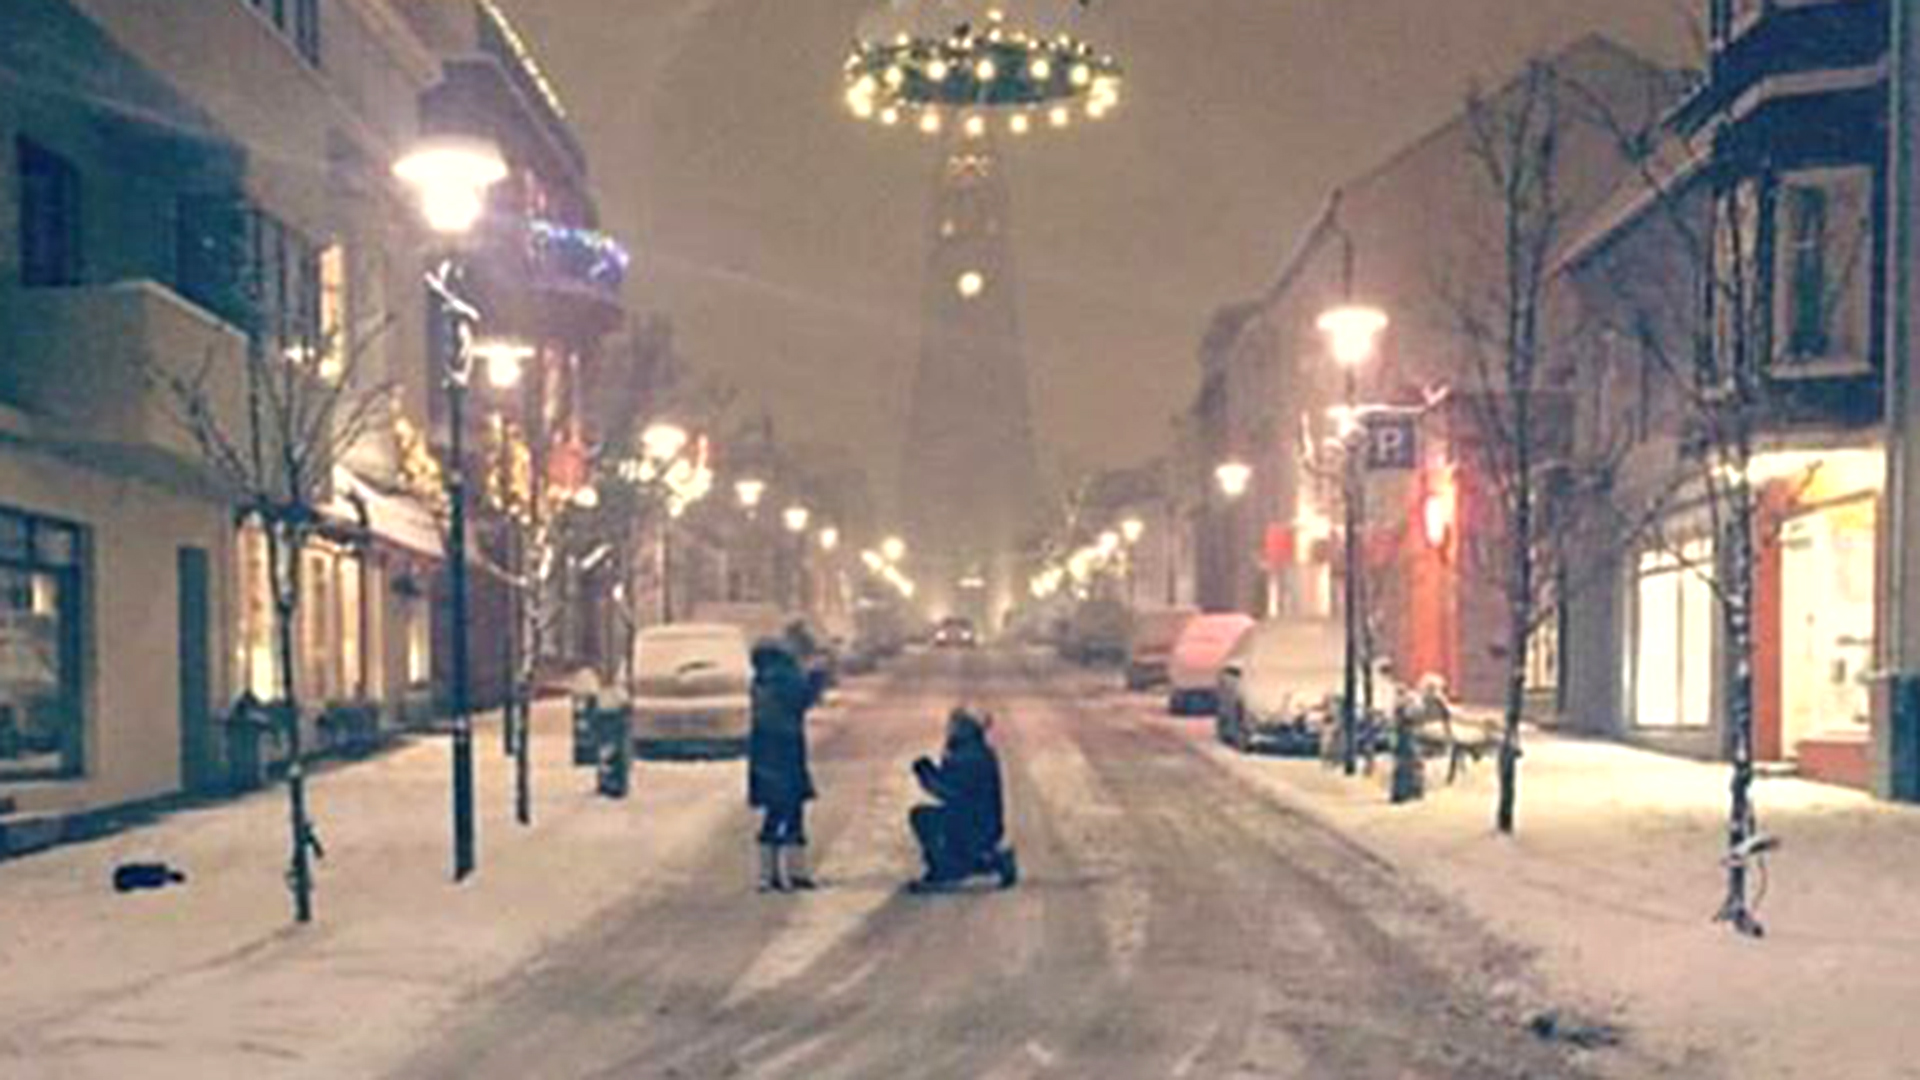 Scottish couple tracks down Iceland engagement photo with social media help